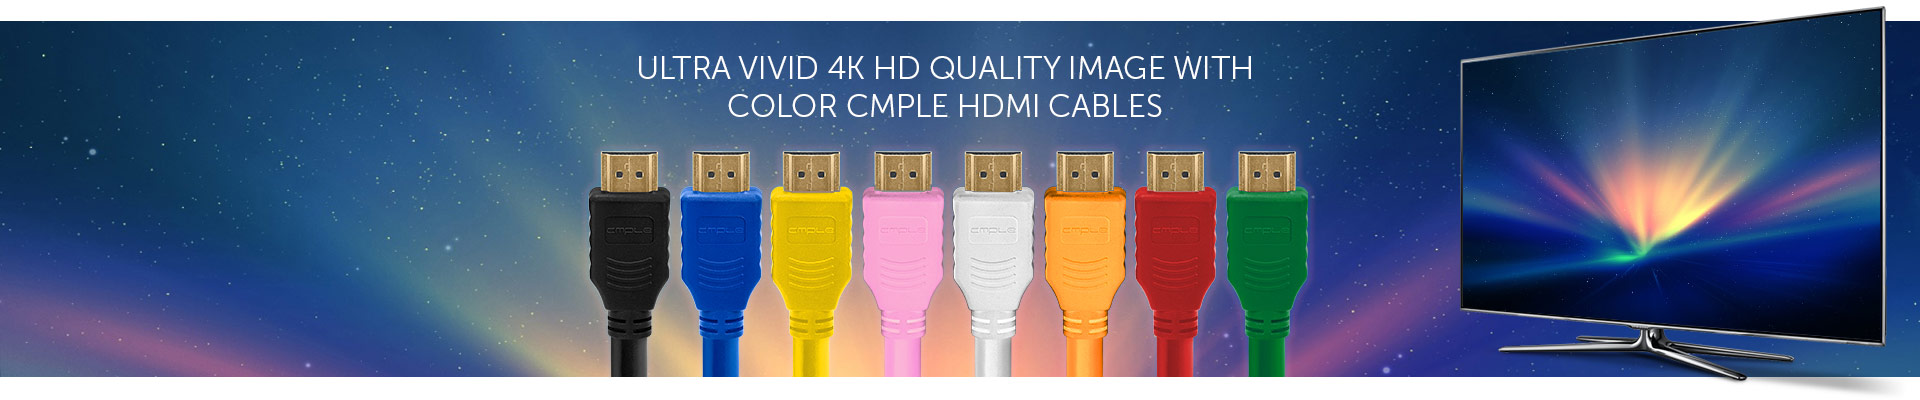 HDMI Cables High Speed